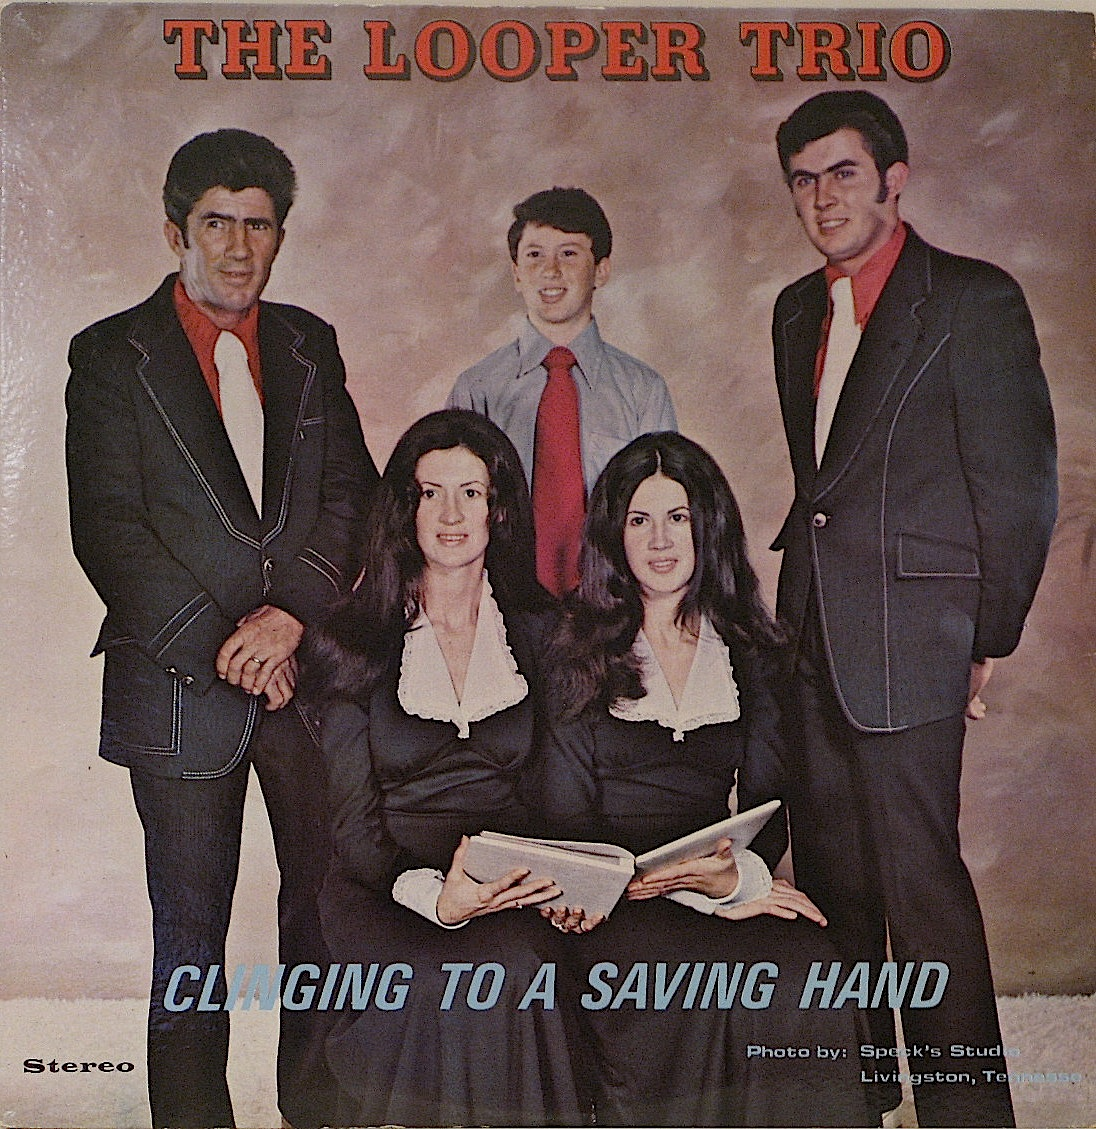 LPCover Lover | Two are out of the loop